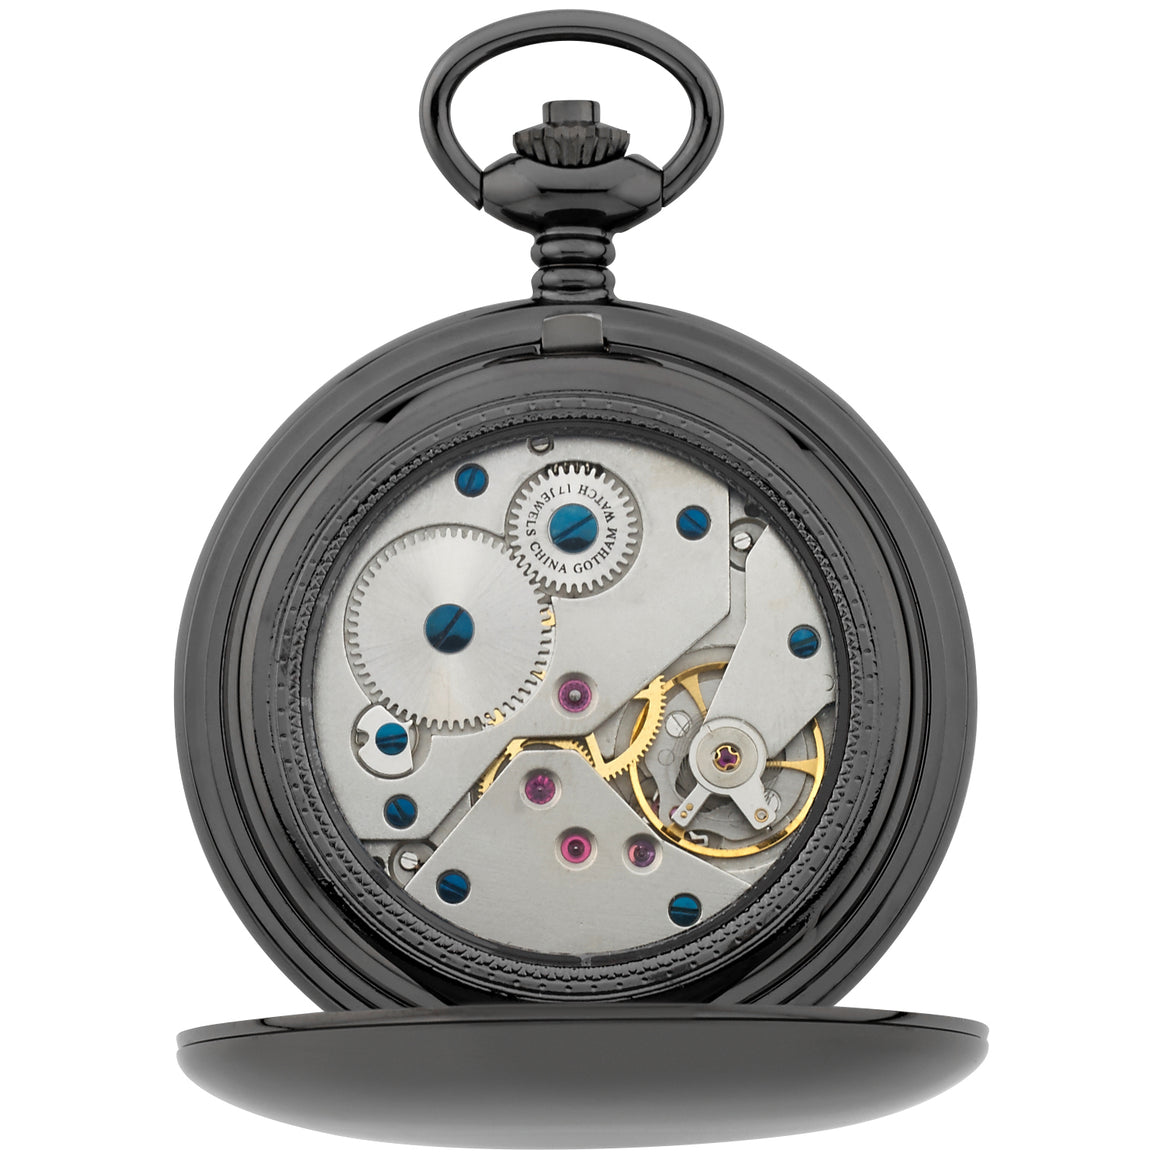 Gotham Men's Gun-Tone Railroad Dial Double Hunter 17 Jewel Mechanical Pocket Watch # GWC18806B - Gotham Watch